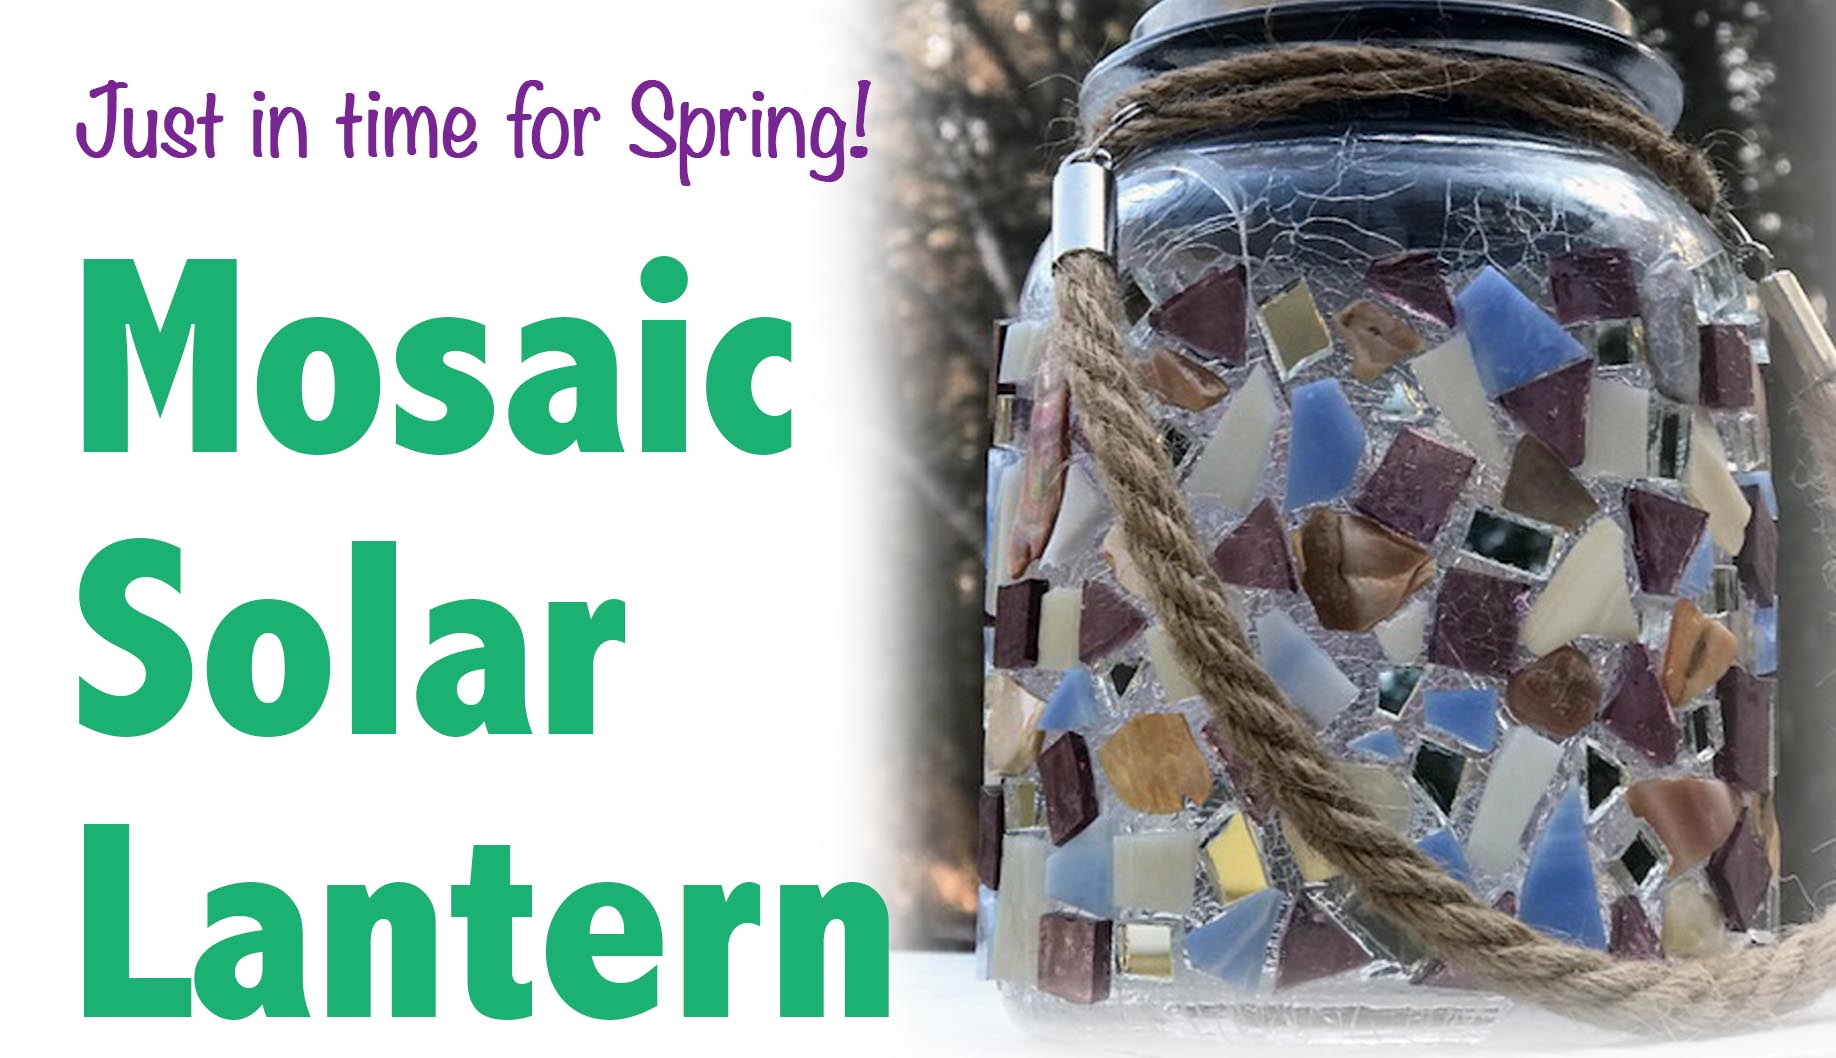 Thursday, May 23rd  6-8pm  $40per person  Just in time for Spring. Make your own hanging solar lantern using mosaic tiles!  Perfect for outside or indoor decor.  All materials included.  includes all materials, 1 beer & homemade pretzel)  Bring your own snacks.